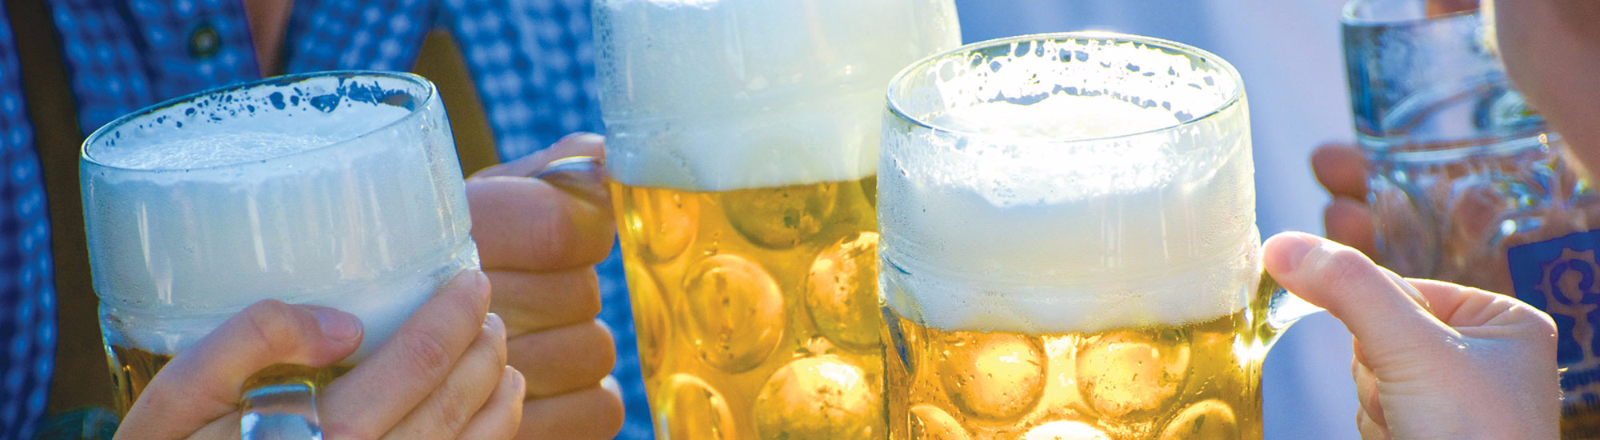 Close-up of hands holding three large glass mugs of golden beer with frothy heads of foam and making a toast among friends